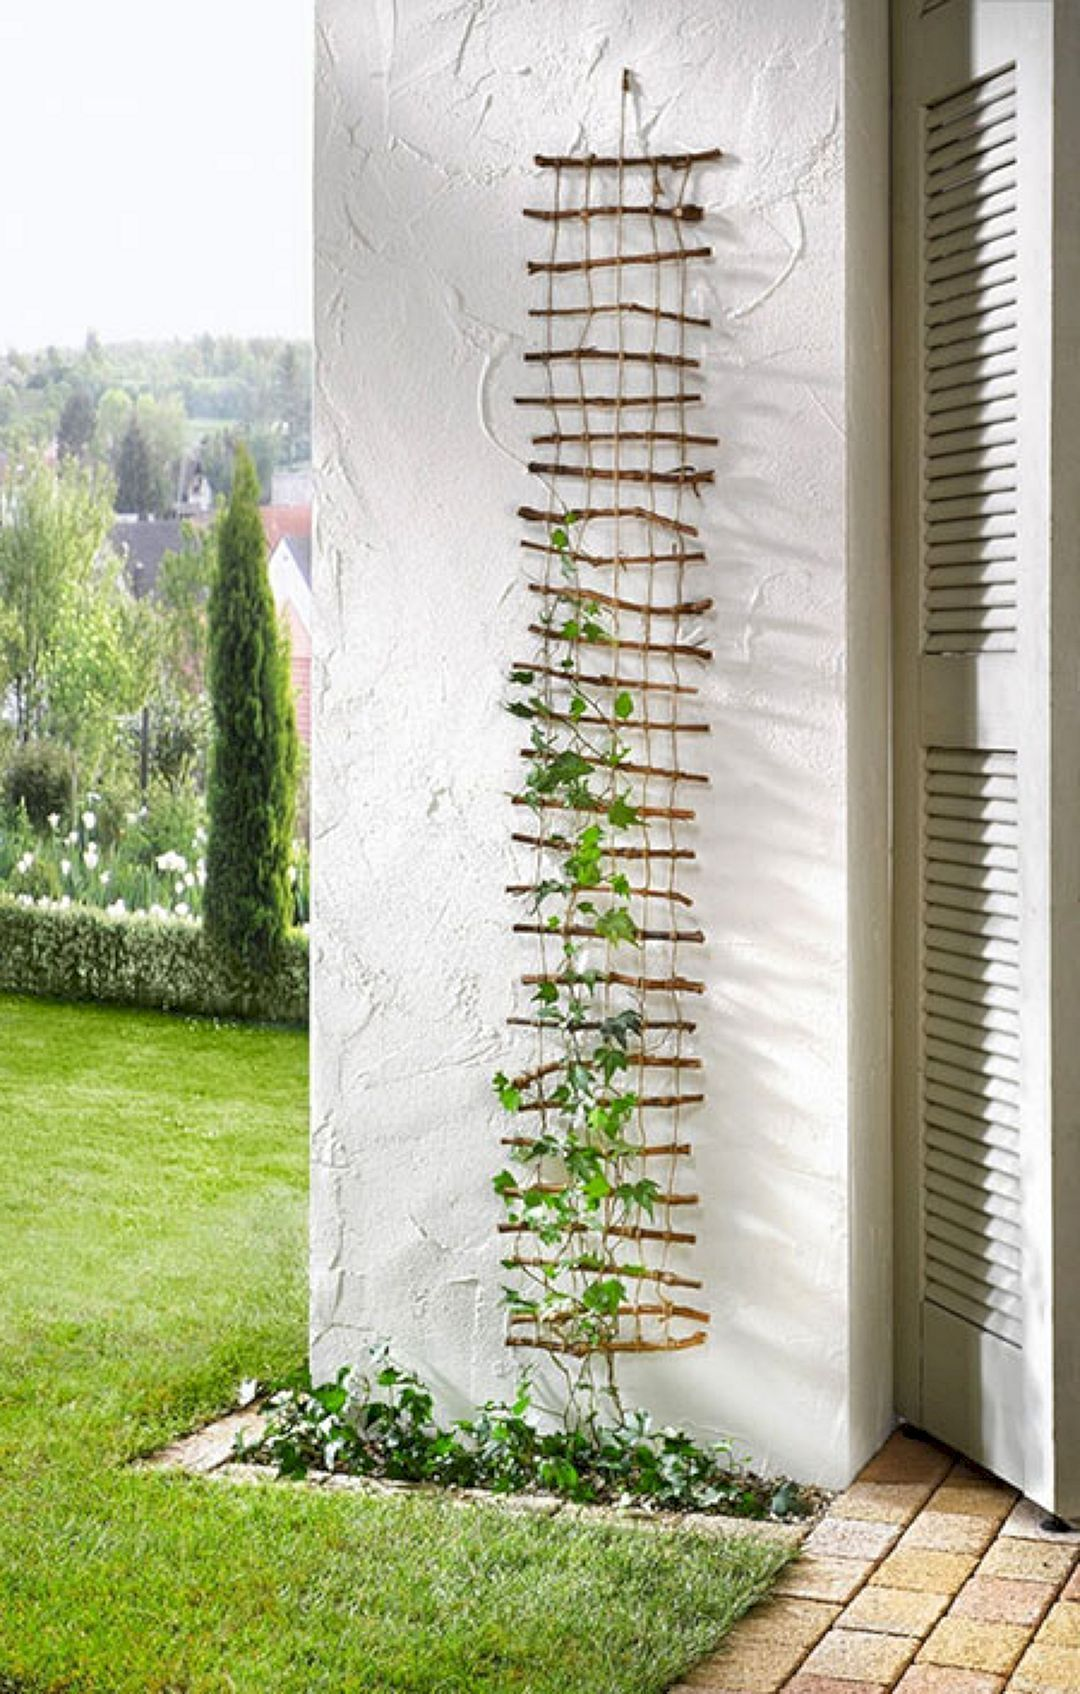 32 Creative Home Front Landscape Design Ideas: Top No 20 Creative DIY Vertical Garden You Can Apply On Your Backyard Front Yard Right Now (With